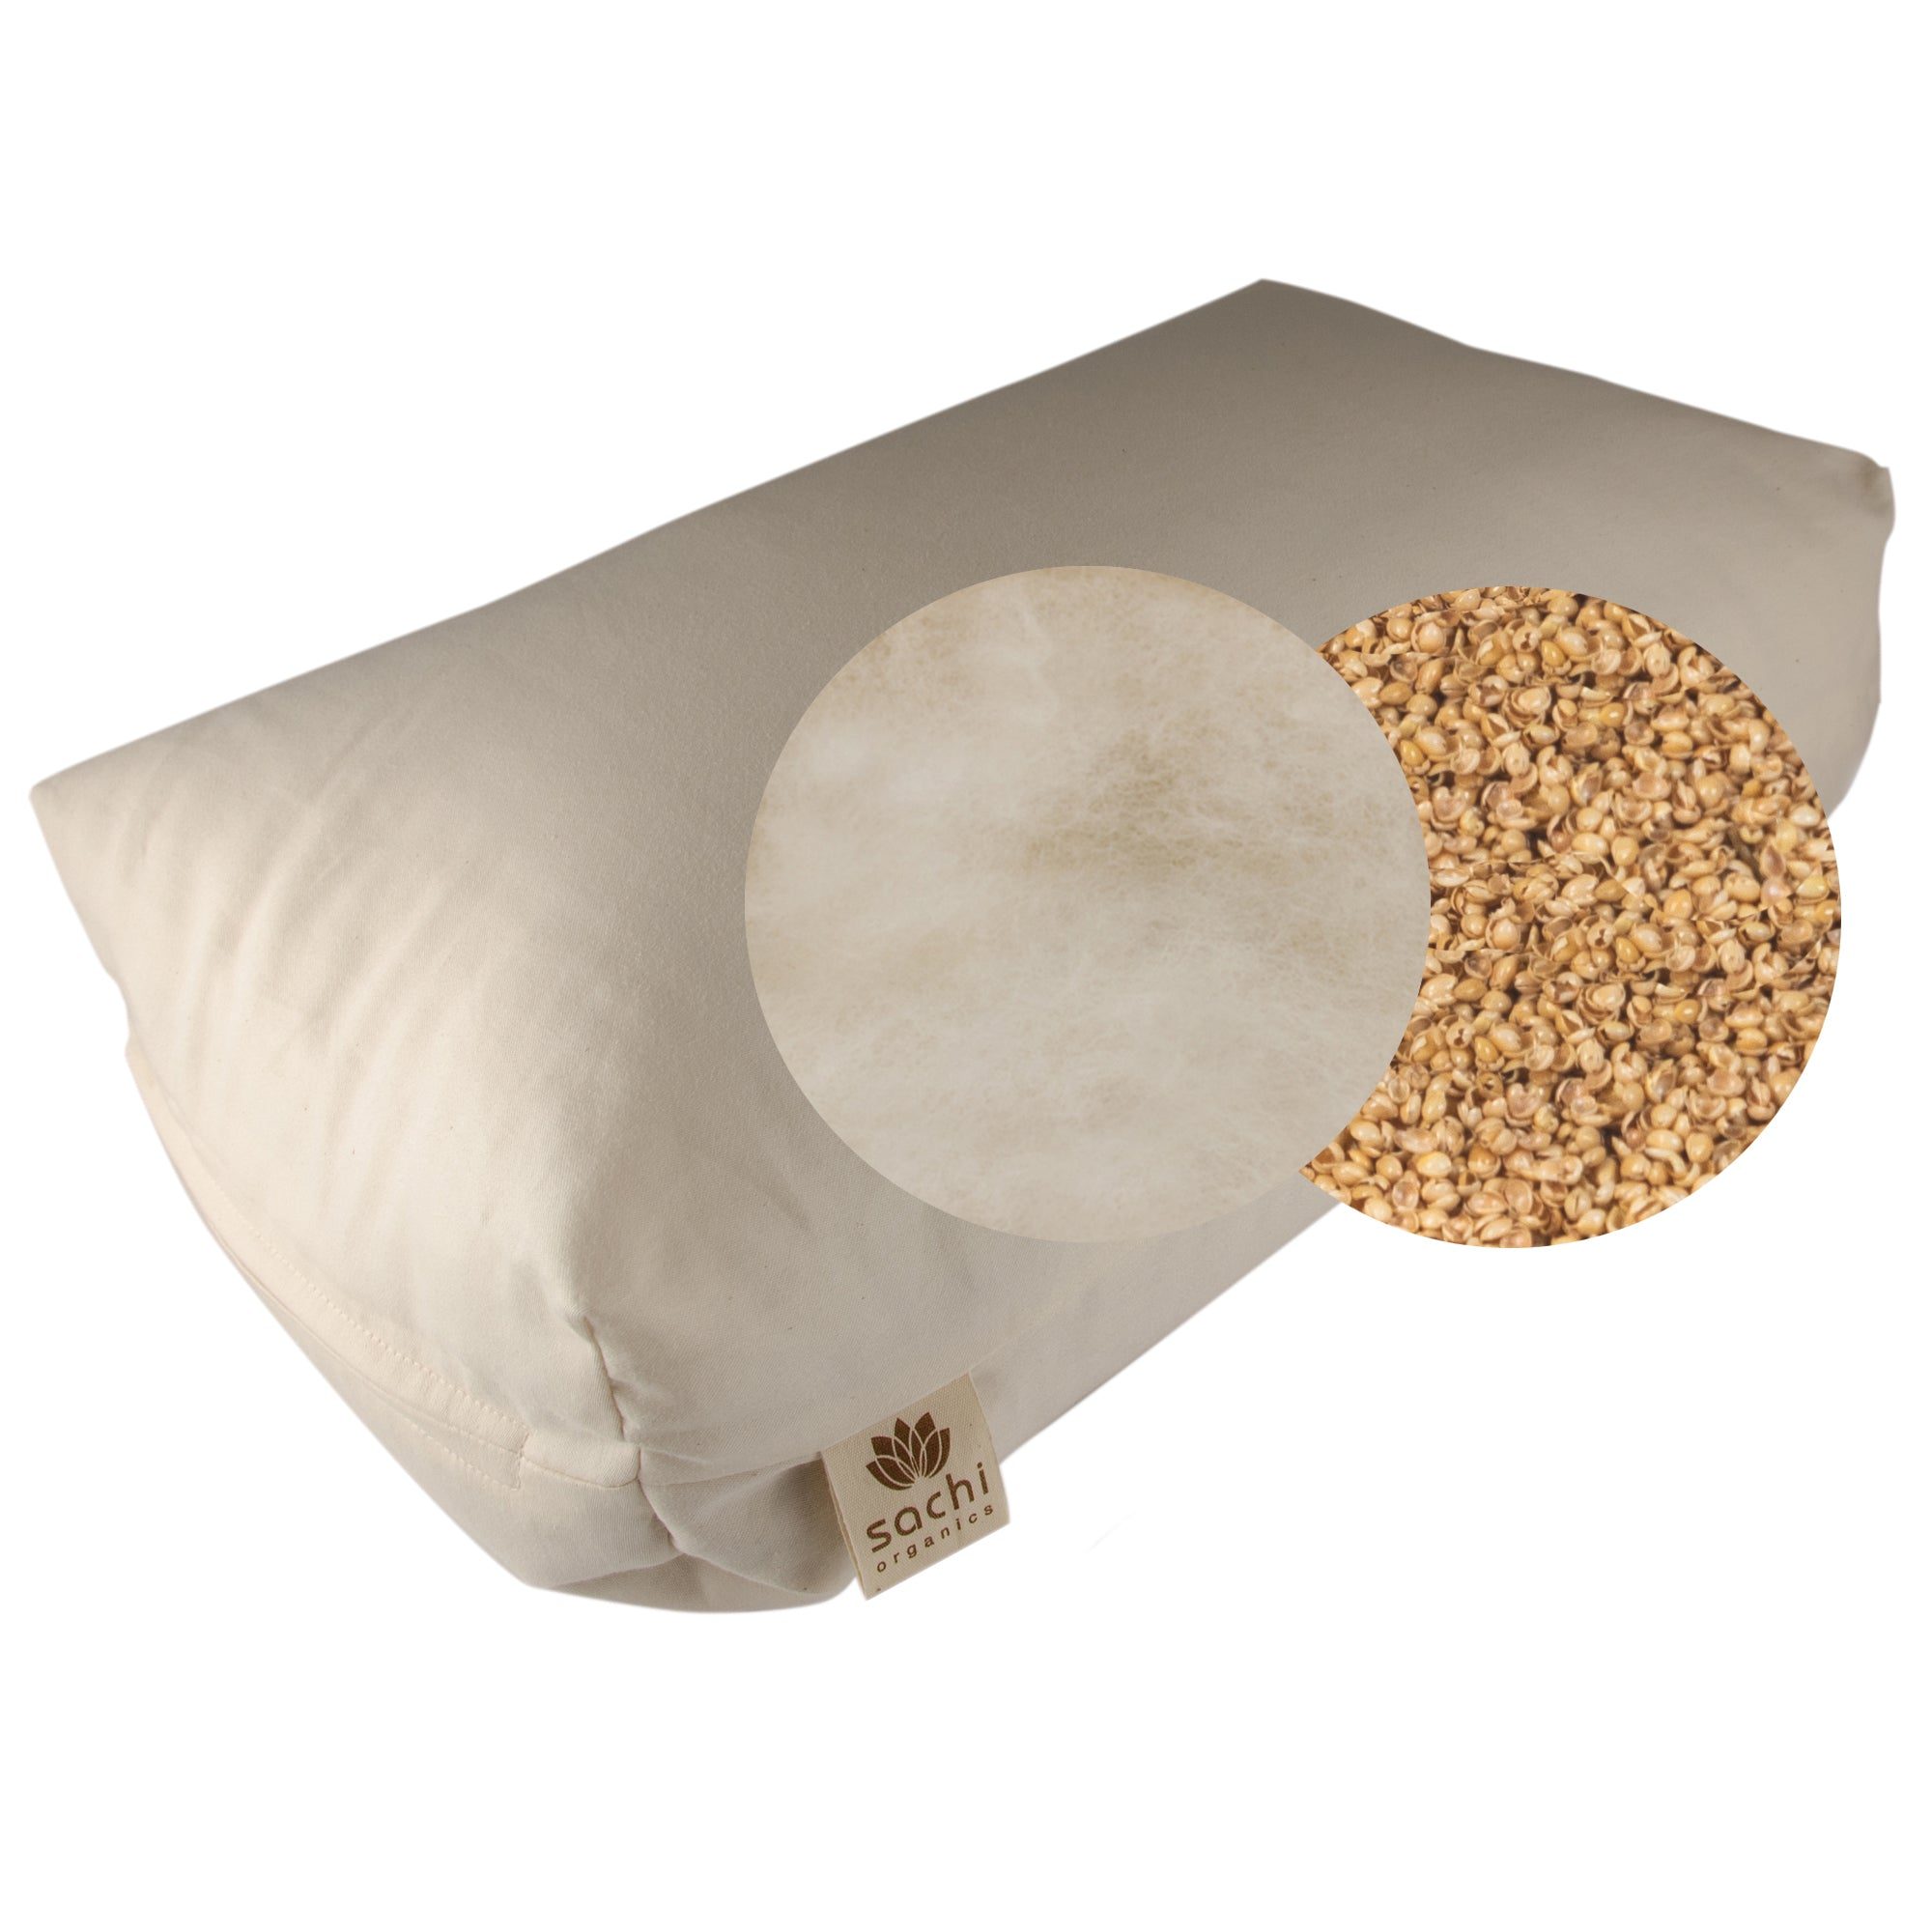 Shambho Pillow: Natural Wool & Millet